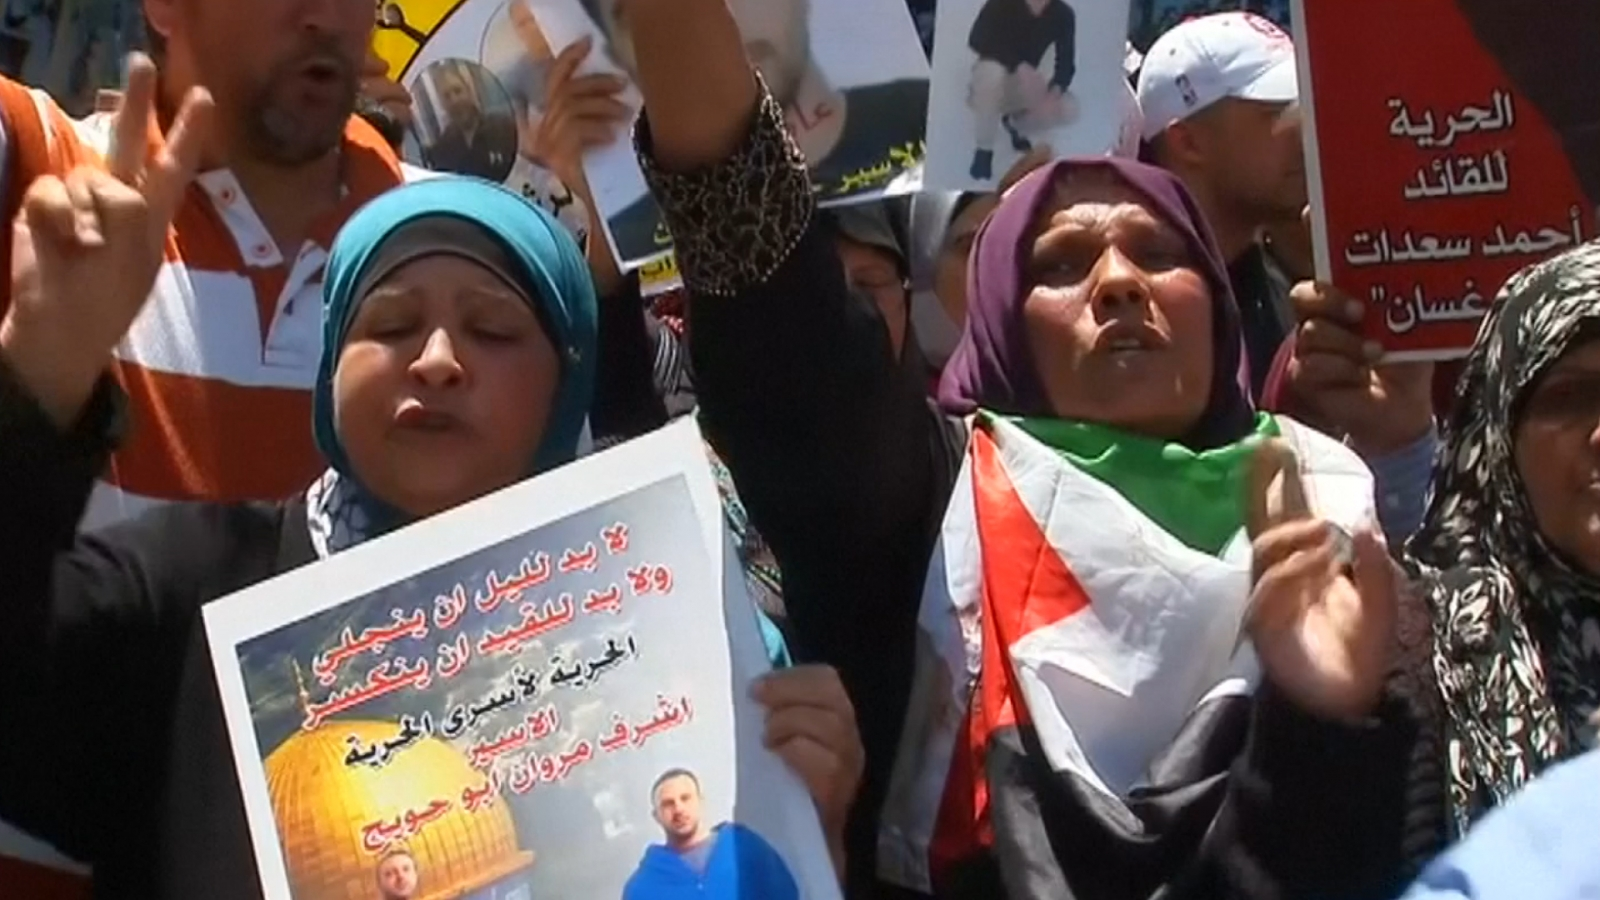 palestinian-prisoners-end-mass-hunger-strike-after-securing-concessions